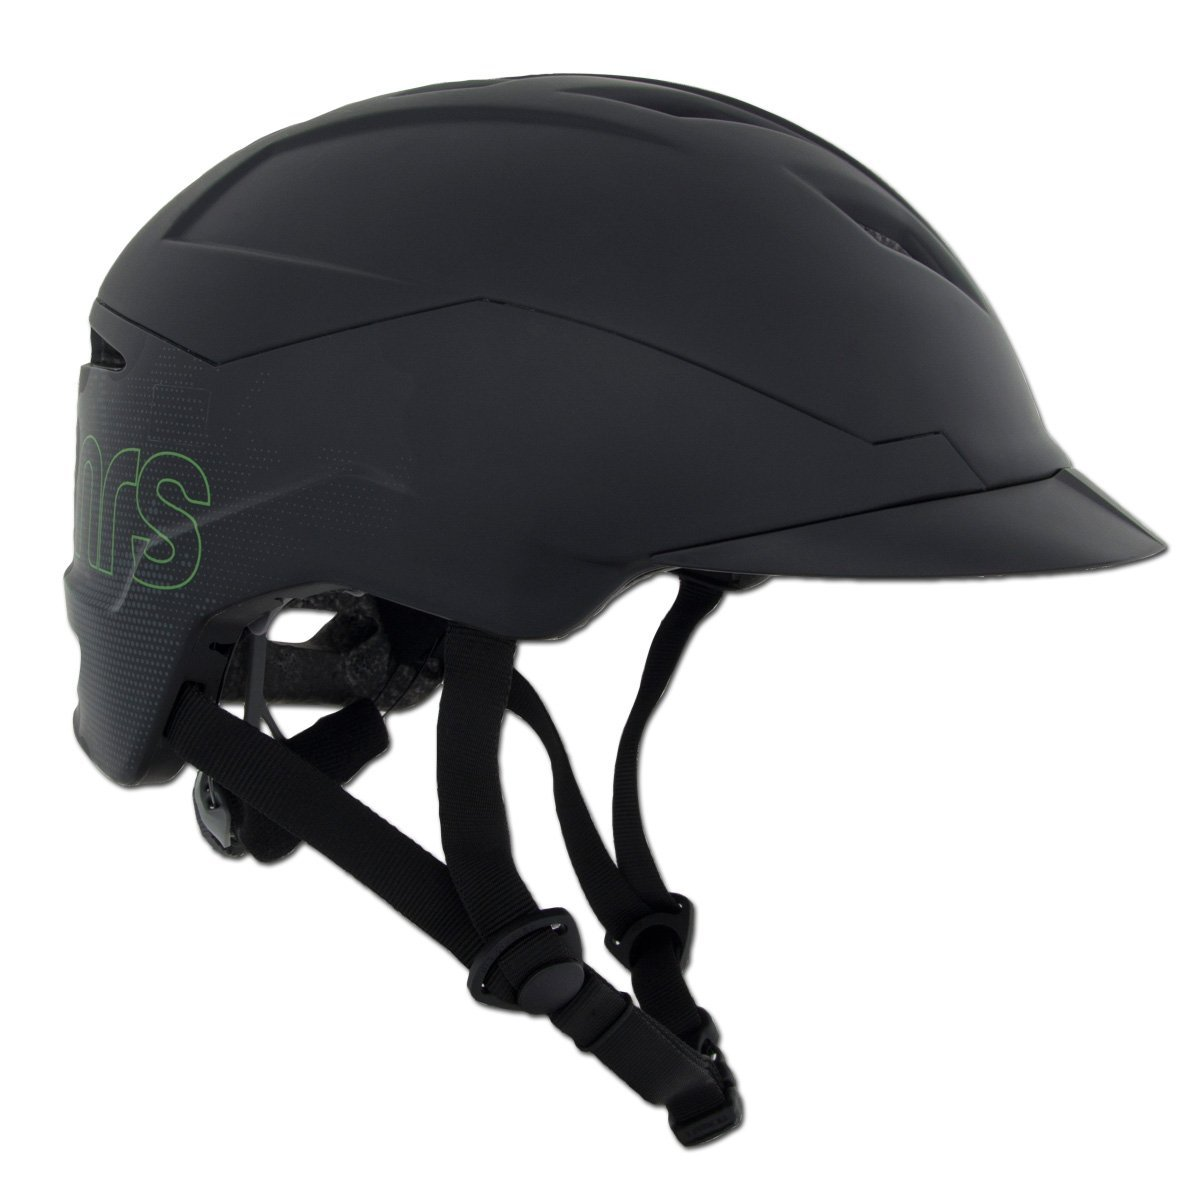 NRS Bicycle Helmets